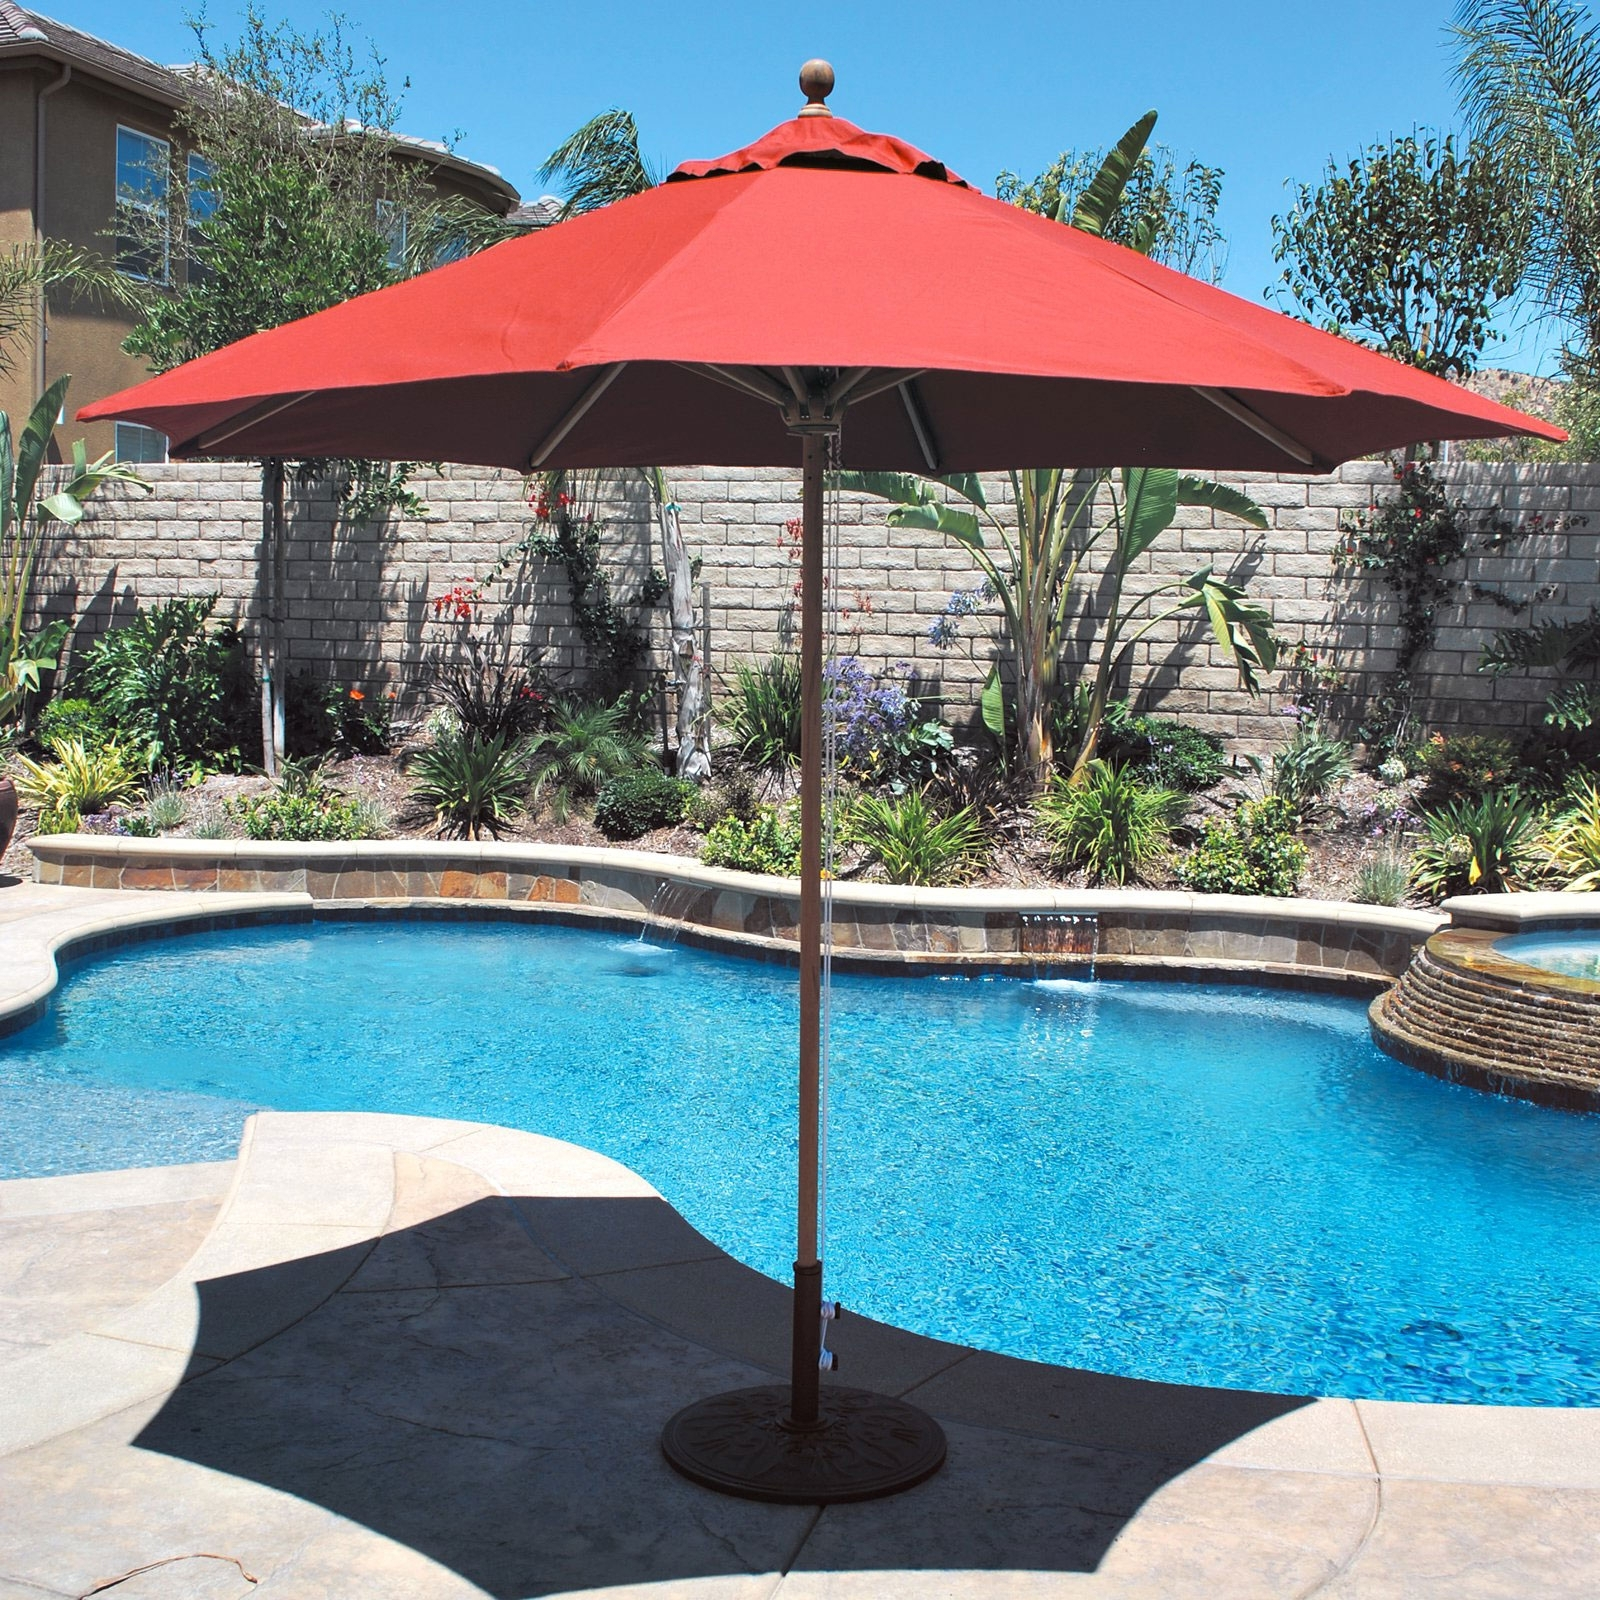 Fashionable Famed Sunbrella Commercial Grade Aluminum Wind Resistant Patio Inside Free Standing Patio Umbrellas (Gallery 10 of 20)